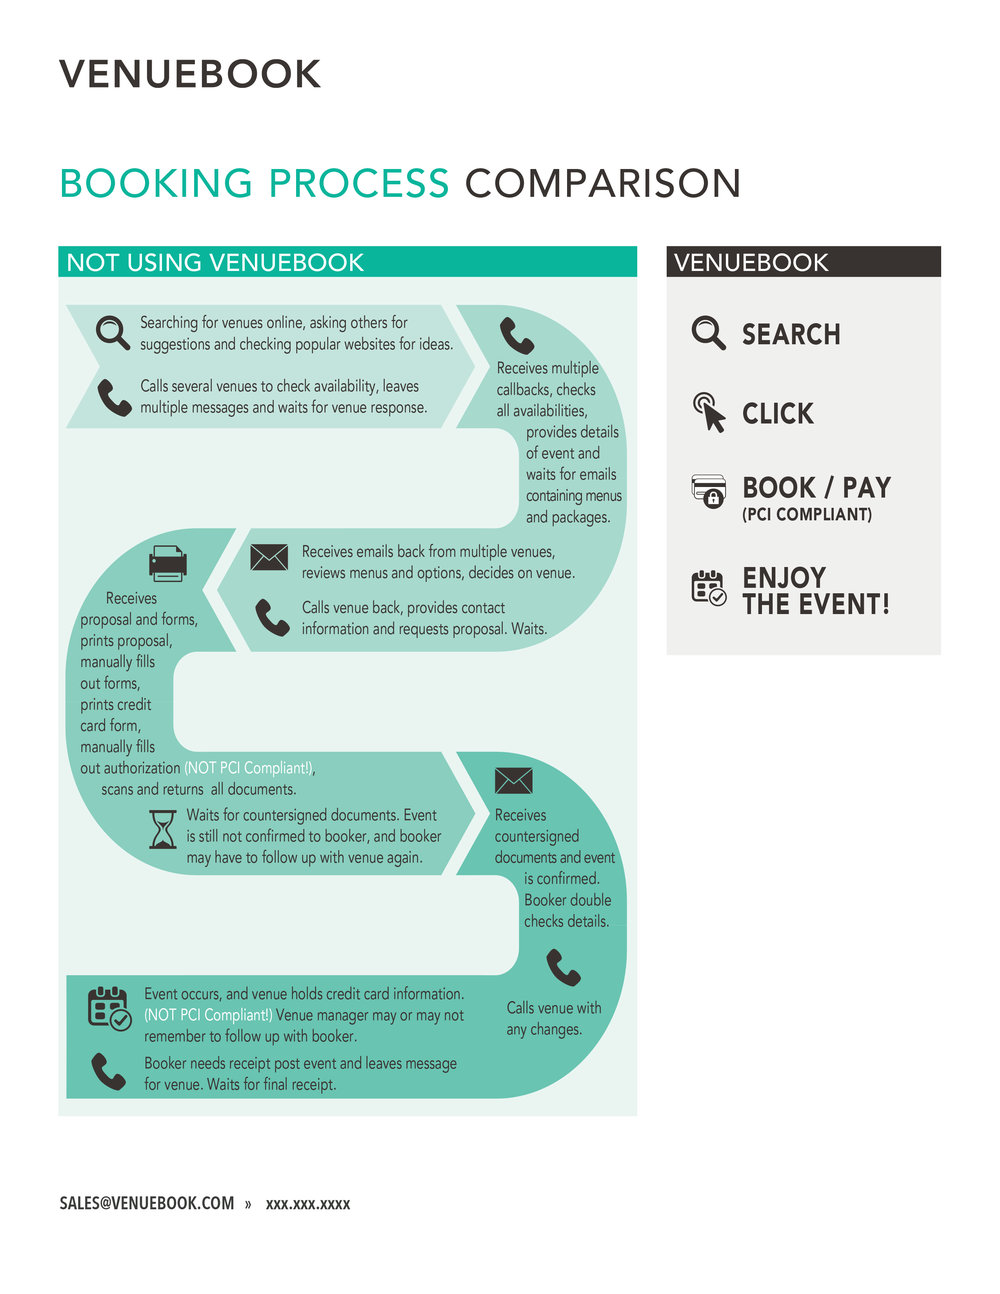 VENUEBOOK Booking Comparison Infographic